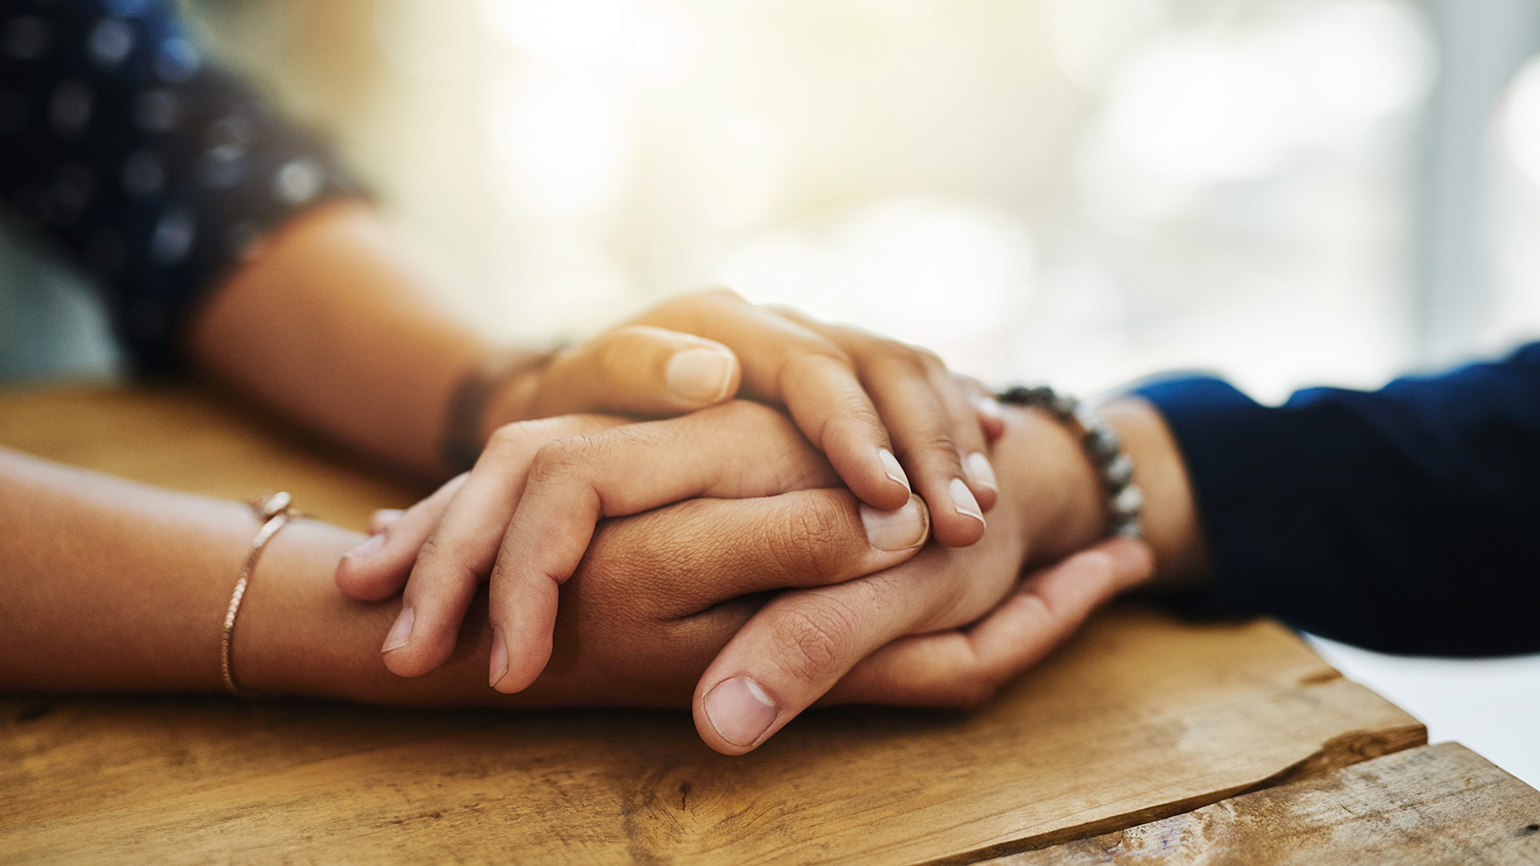 A caregiver clasps her charge's hand in hers